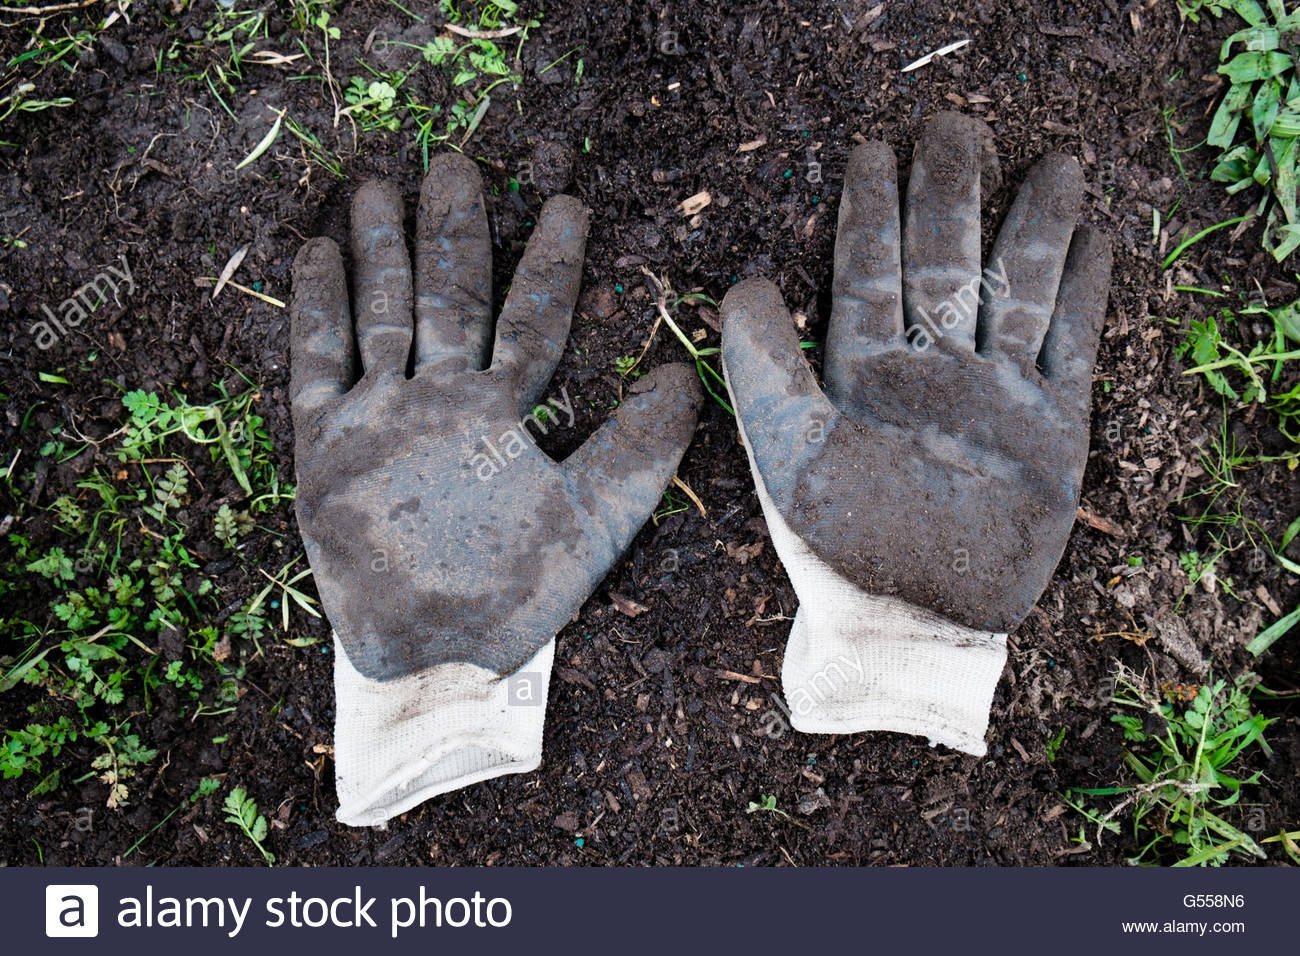 Pair of Muddy Gardening Gloves at Richmond Trees Planting Event, Richmond, California - Stock Image